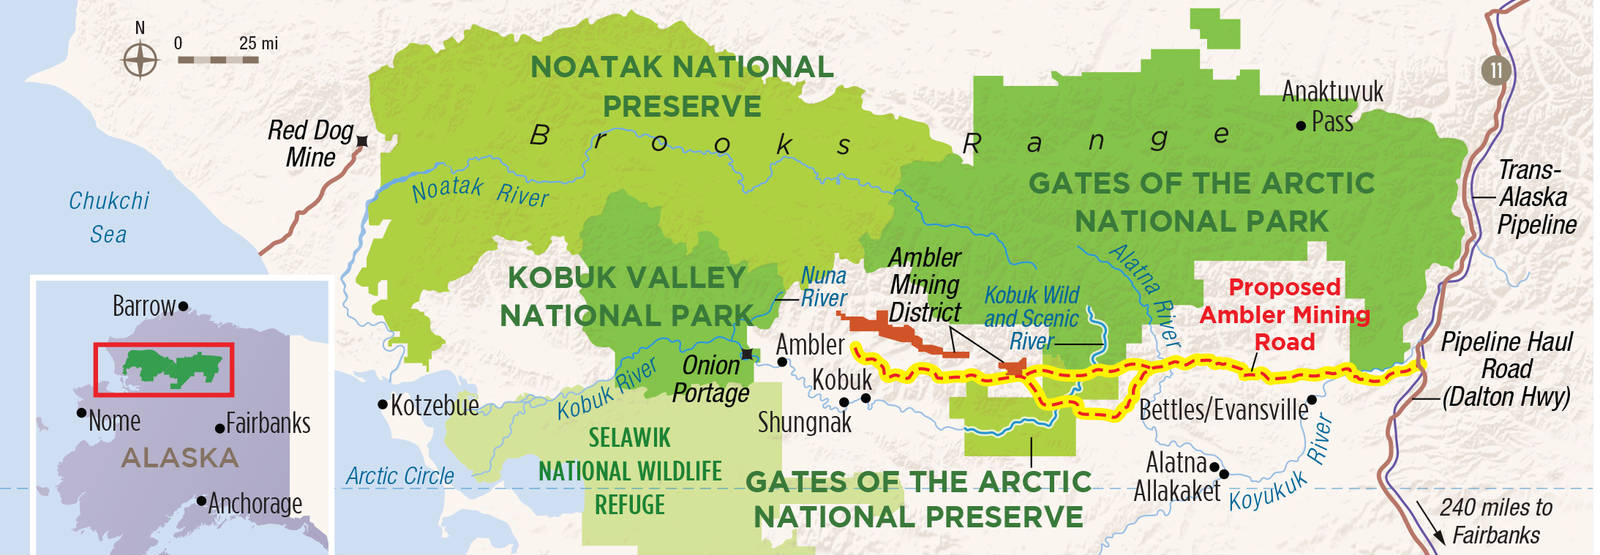 Protect Gates of the Arctic National Park Preserve National